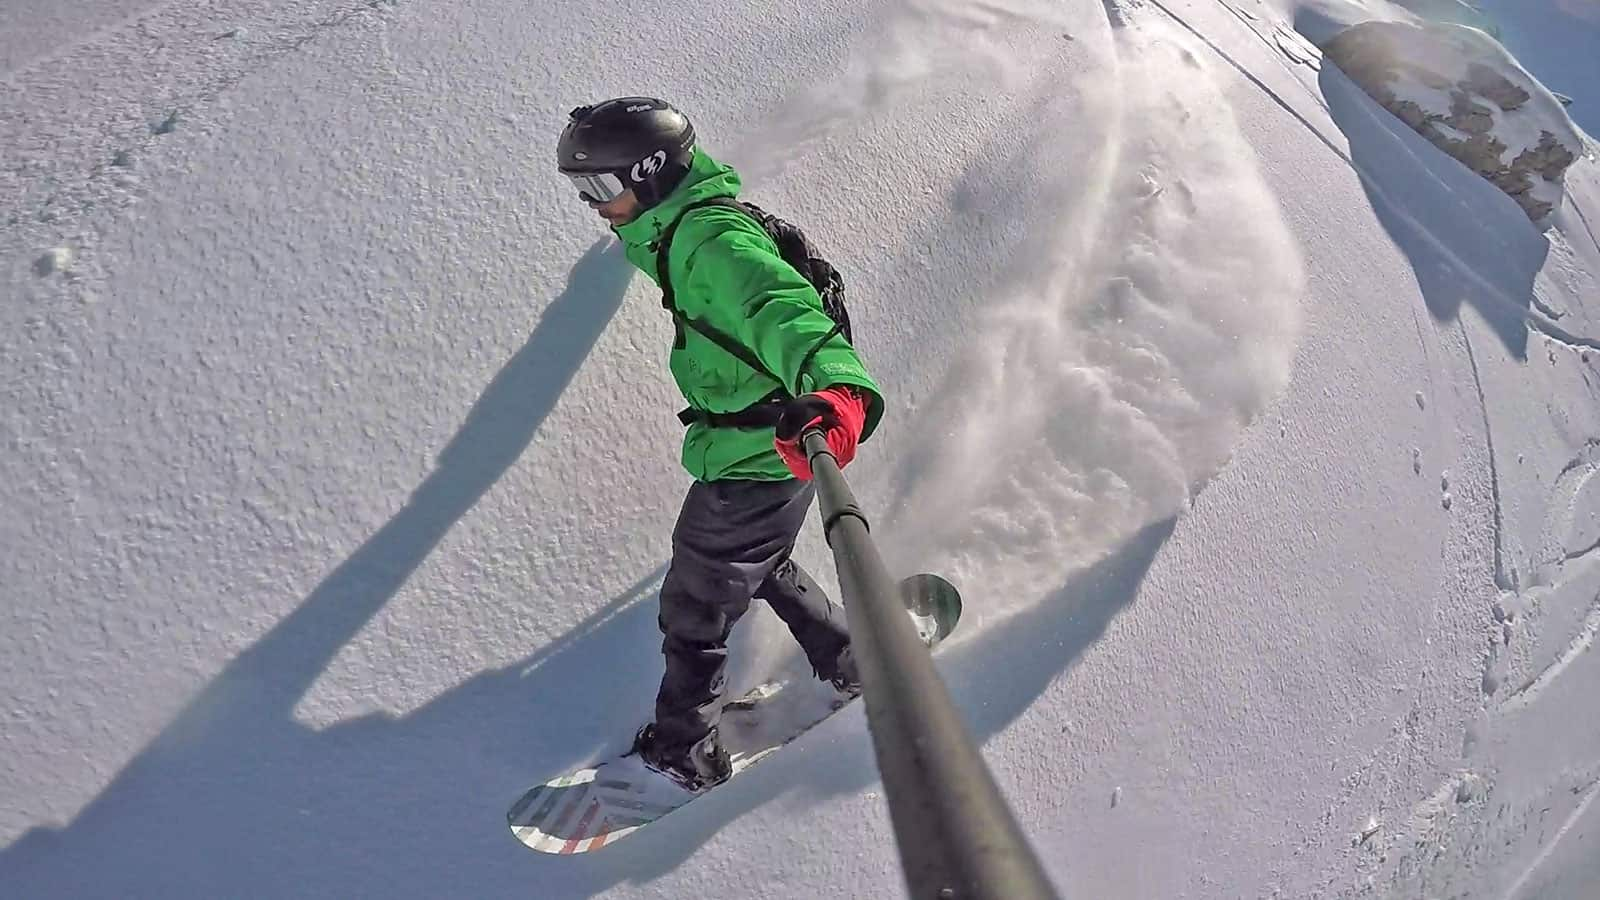 How To Make A Fun Snowboarding Video With Your GoPro Camera 360Guide